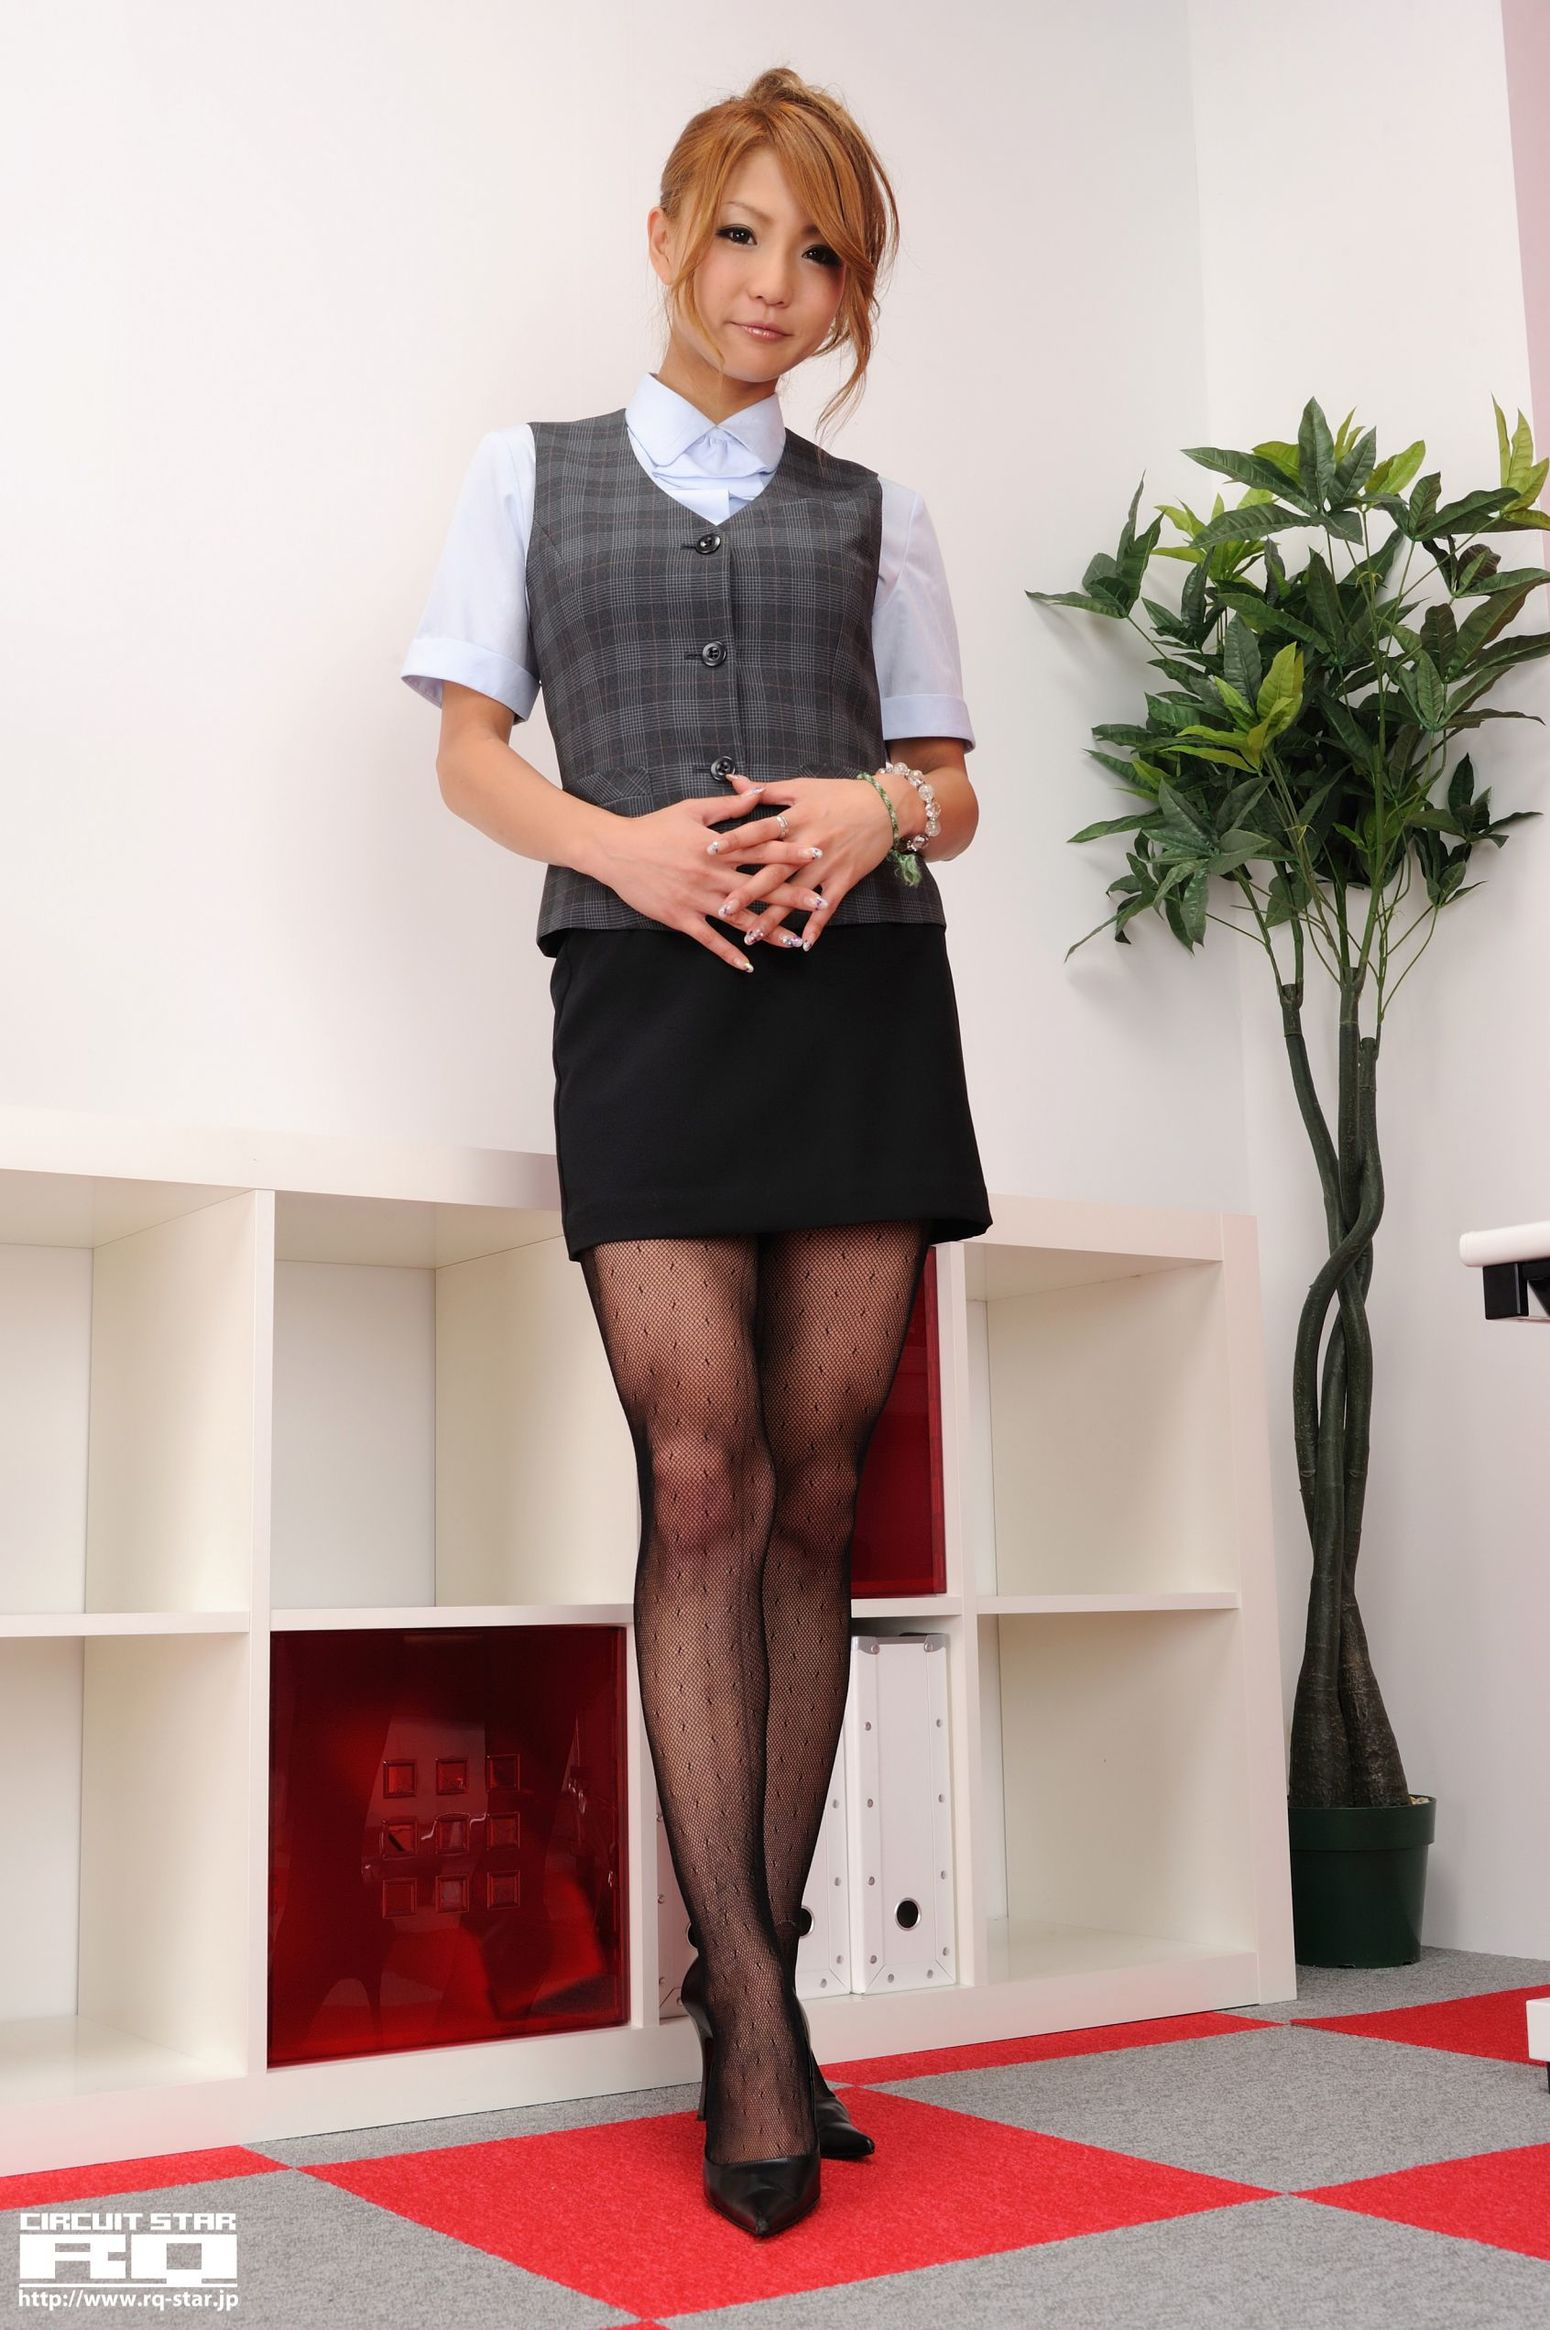 [RQ-STAR] NO.00404 佐藤陽南 Office Lady办公室女郎系列1